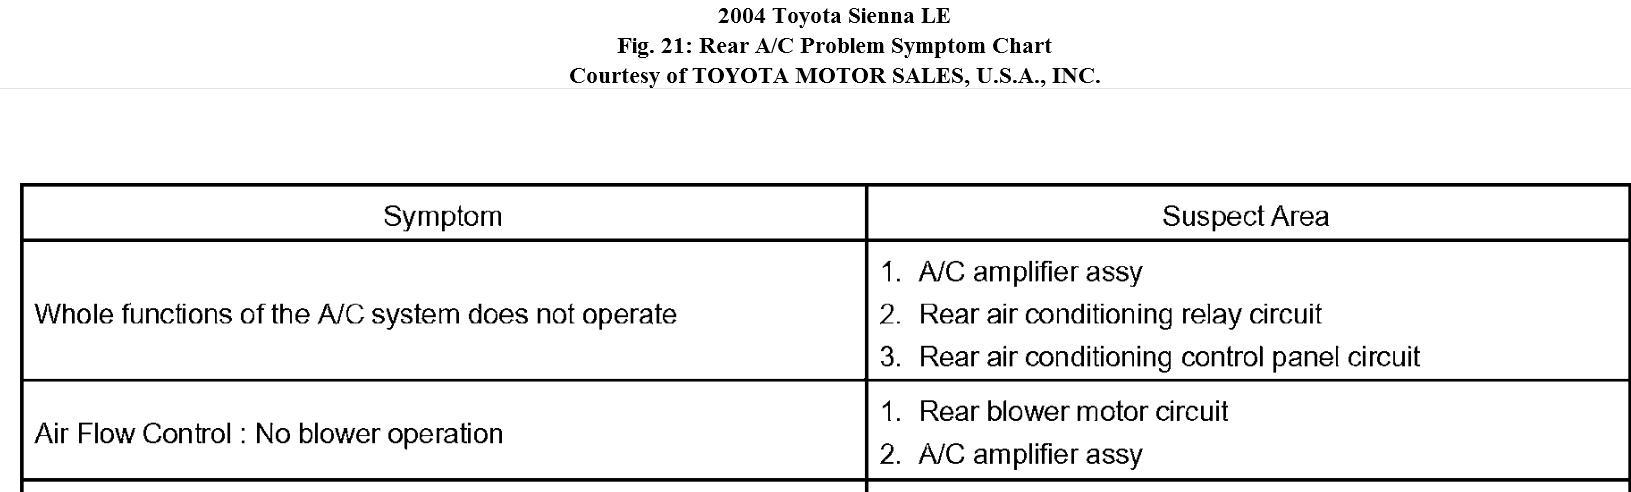 Toyota Sienna Service Manual: Problem symptoms table